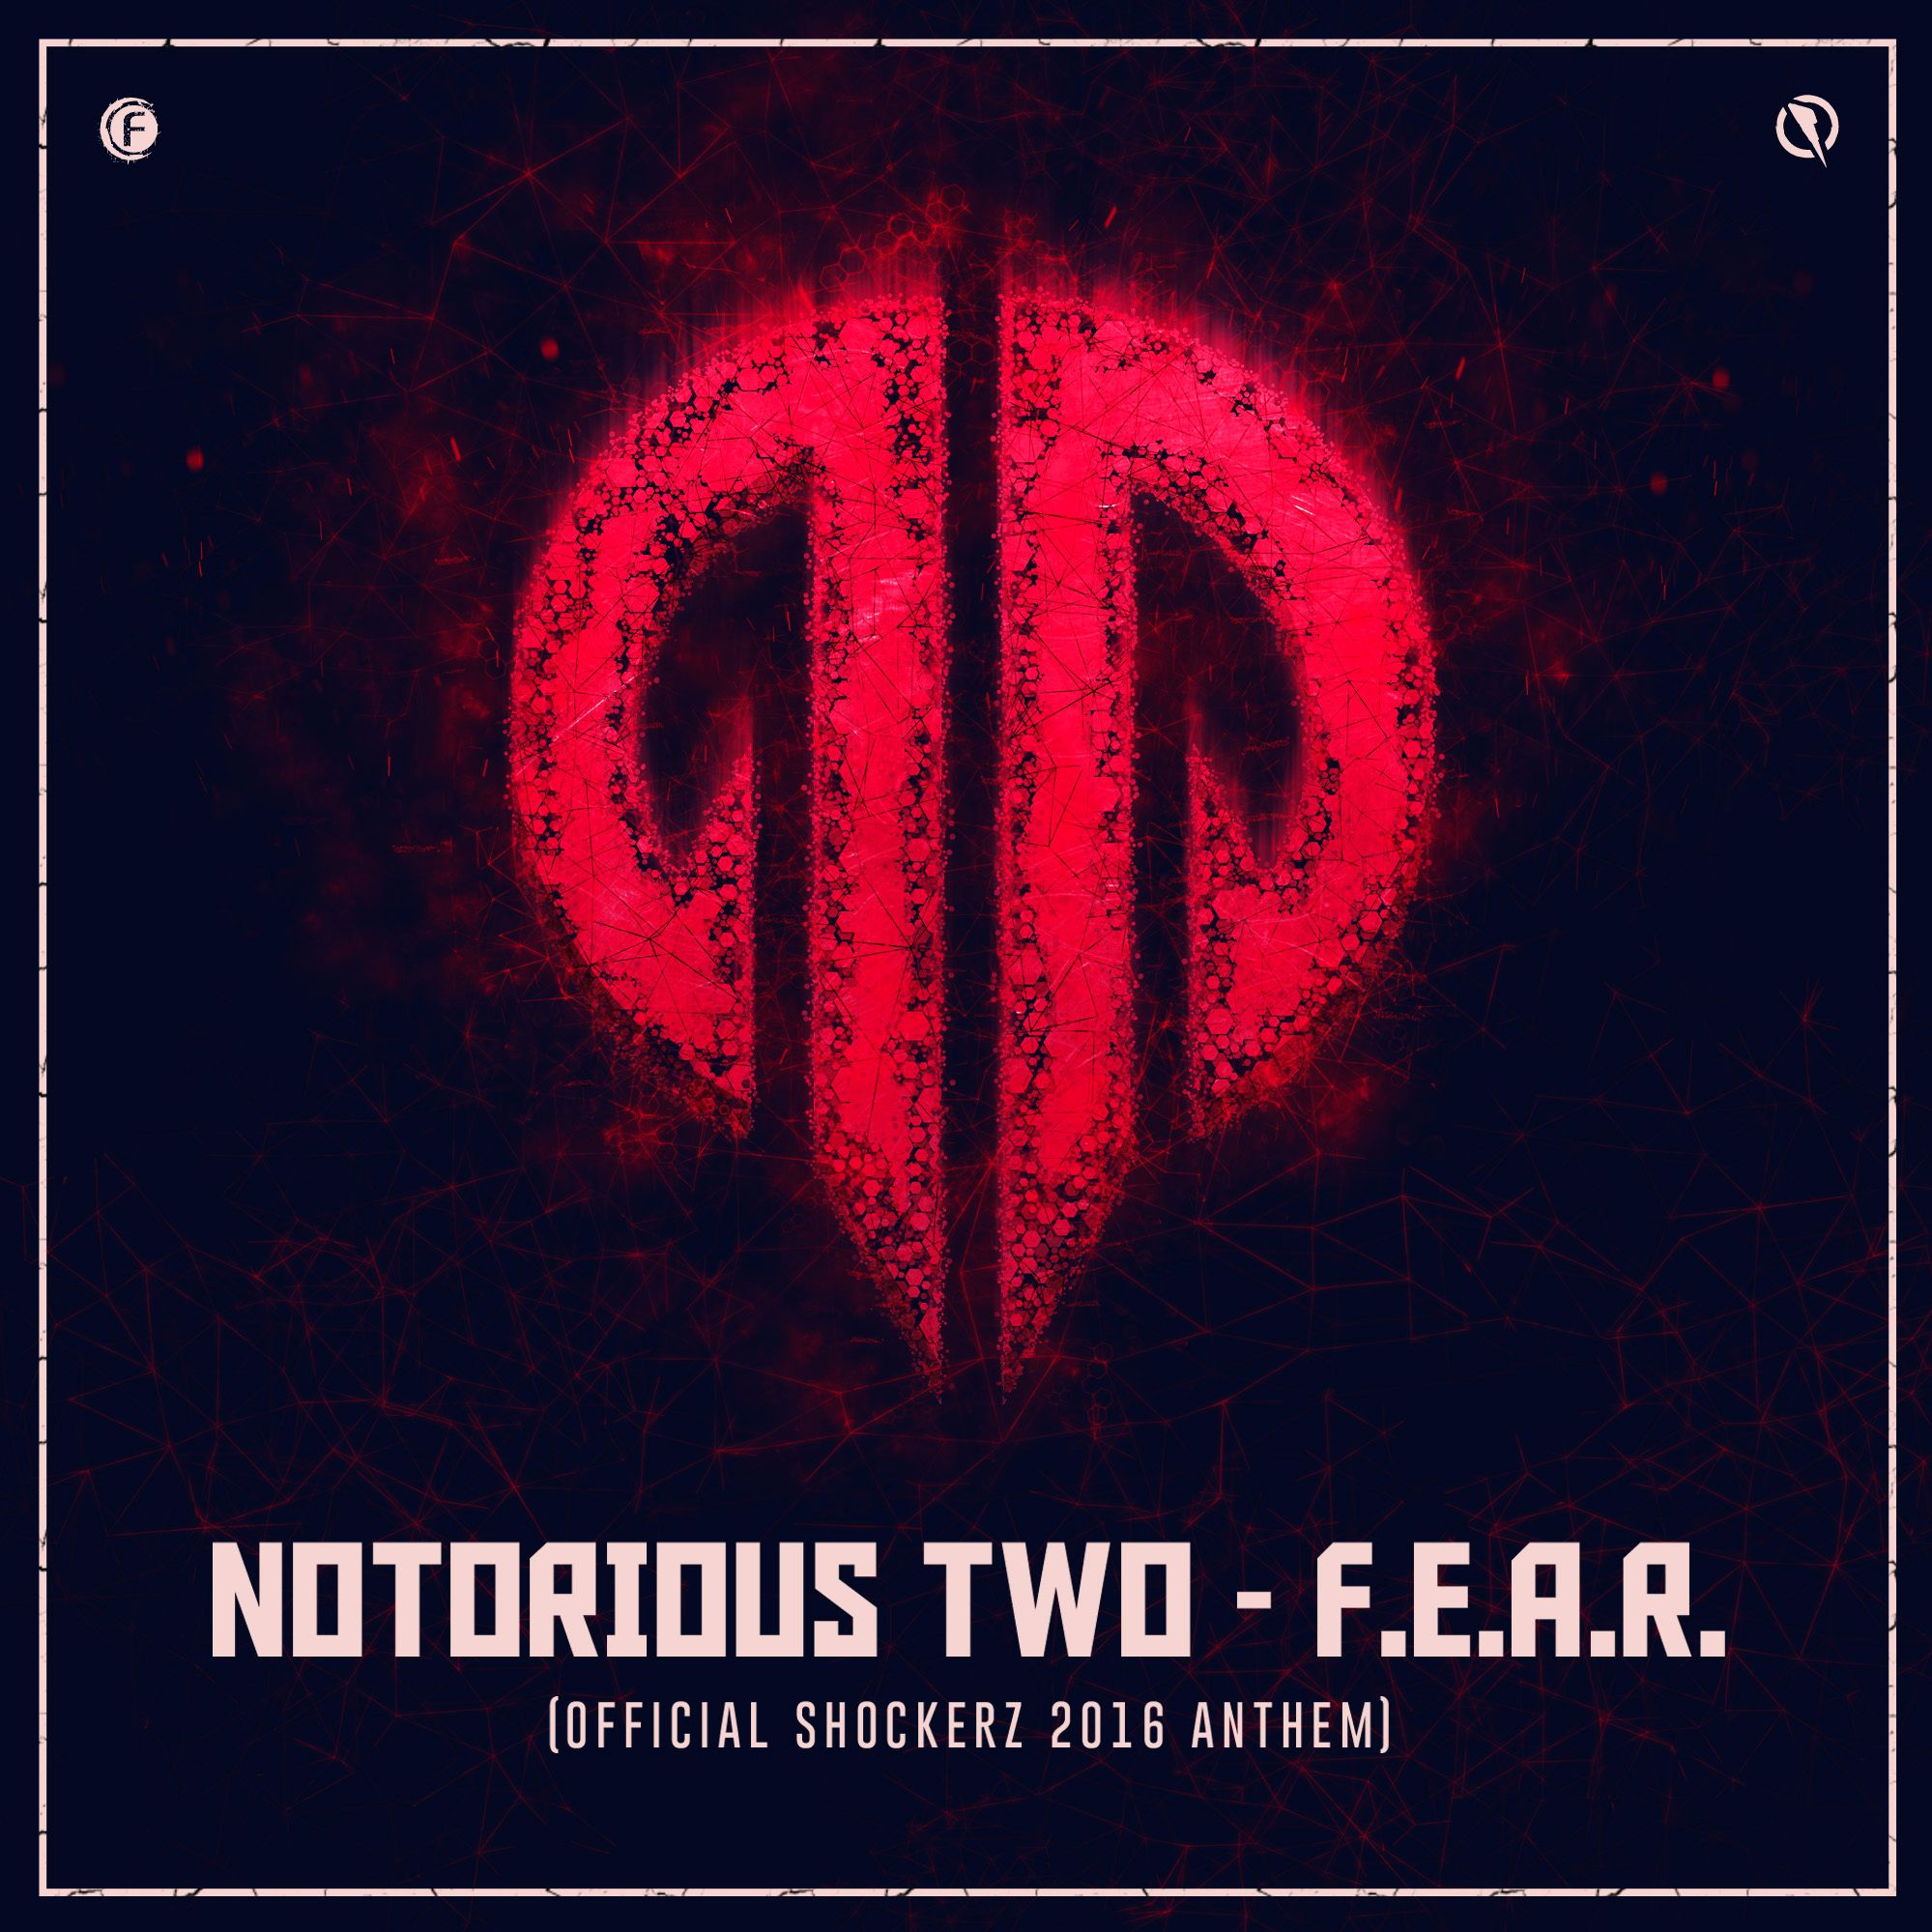 Notorious Two - F.E.A.R. (Official Shockerz 2016 Anthem) [FUSION RECORDS] FUSION322